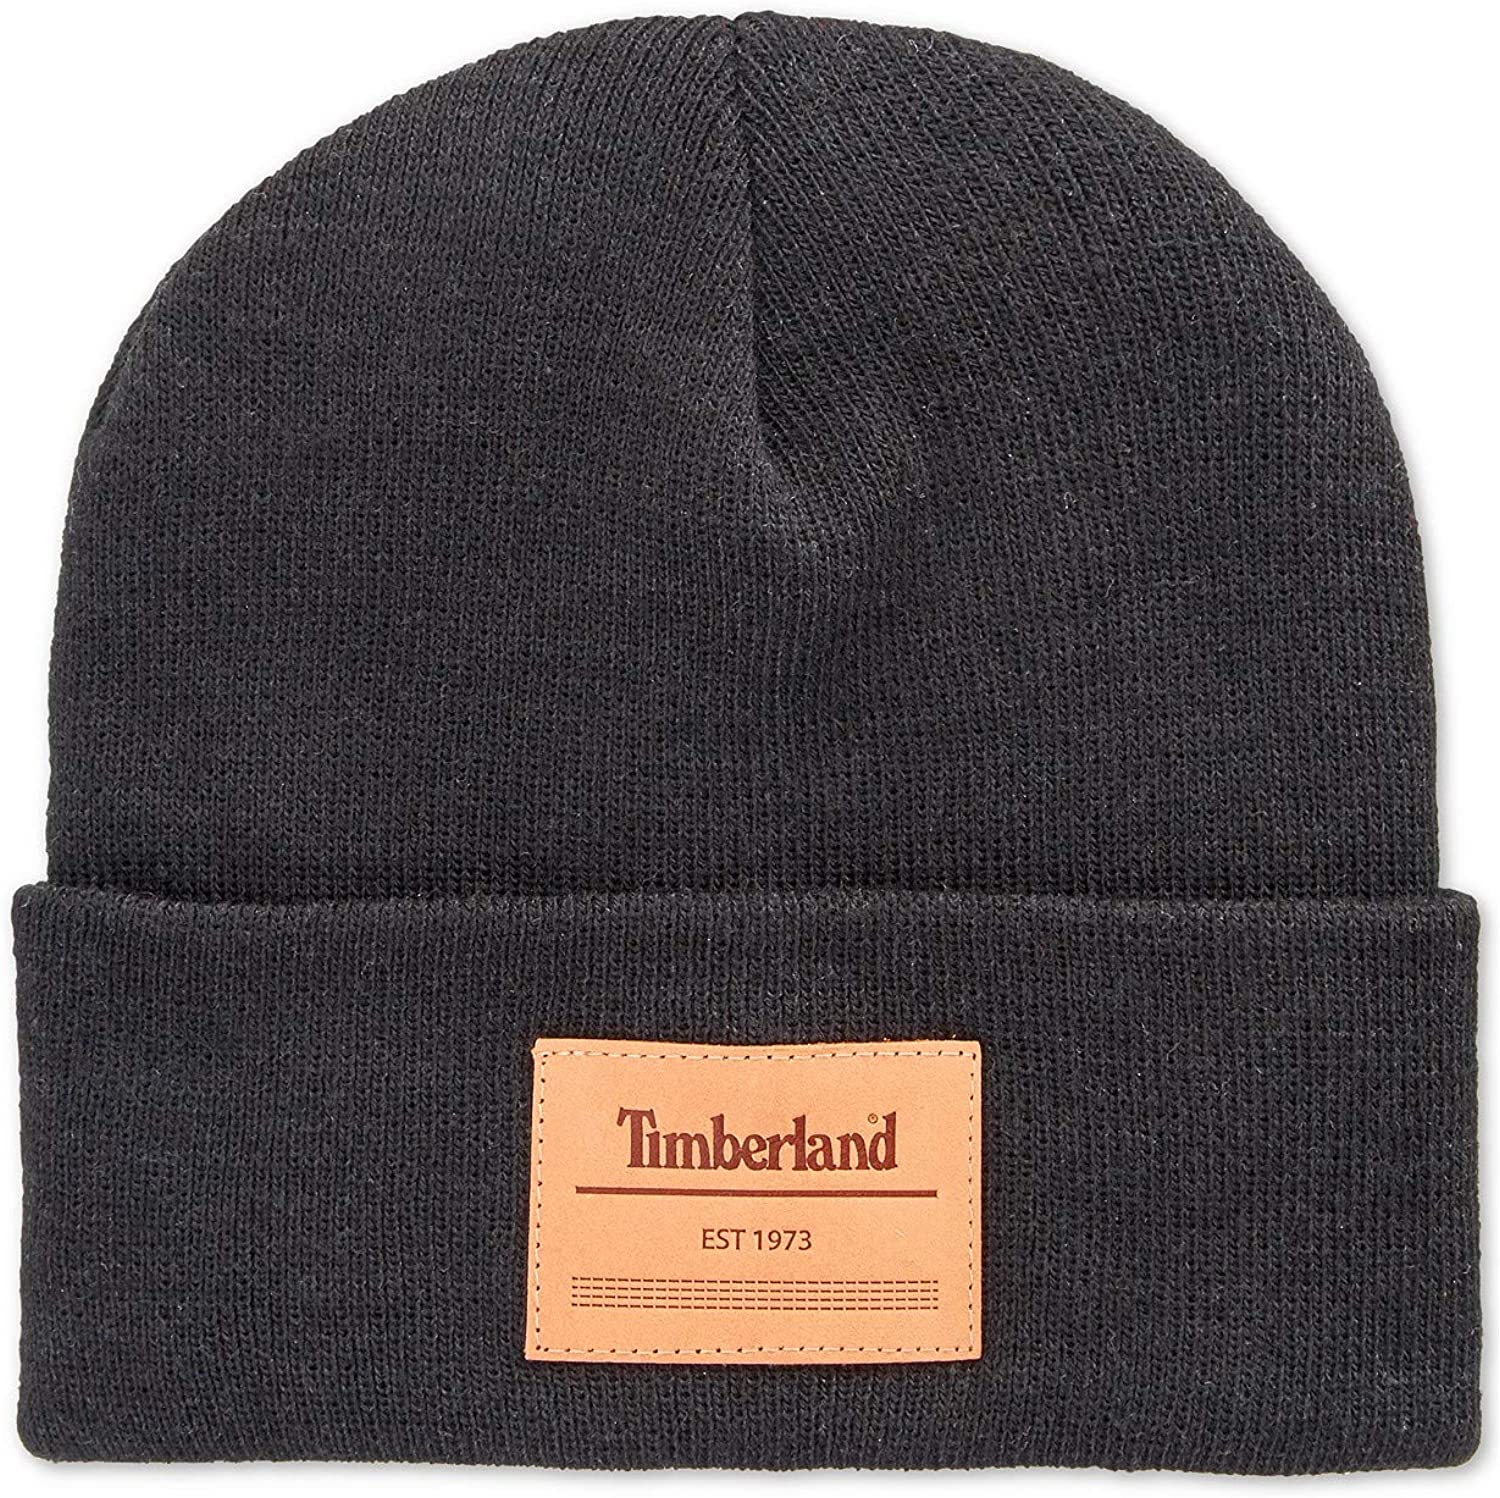 Timberland Men`s Heat Retention High order Cash special price Watch with Leath Cap Beanie Knit